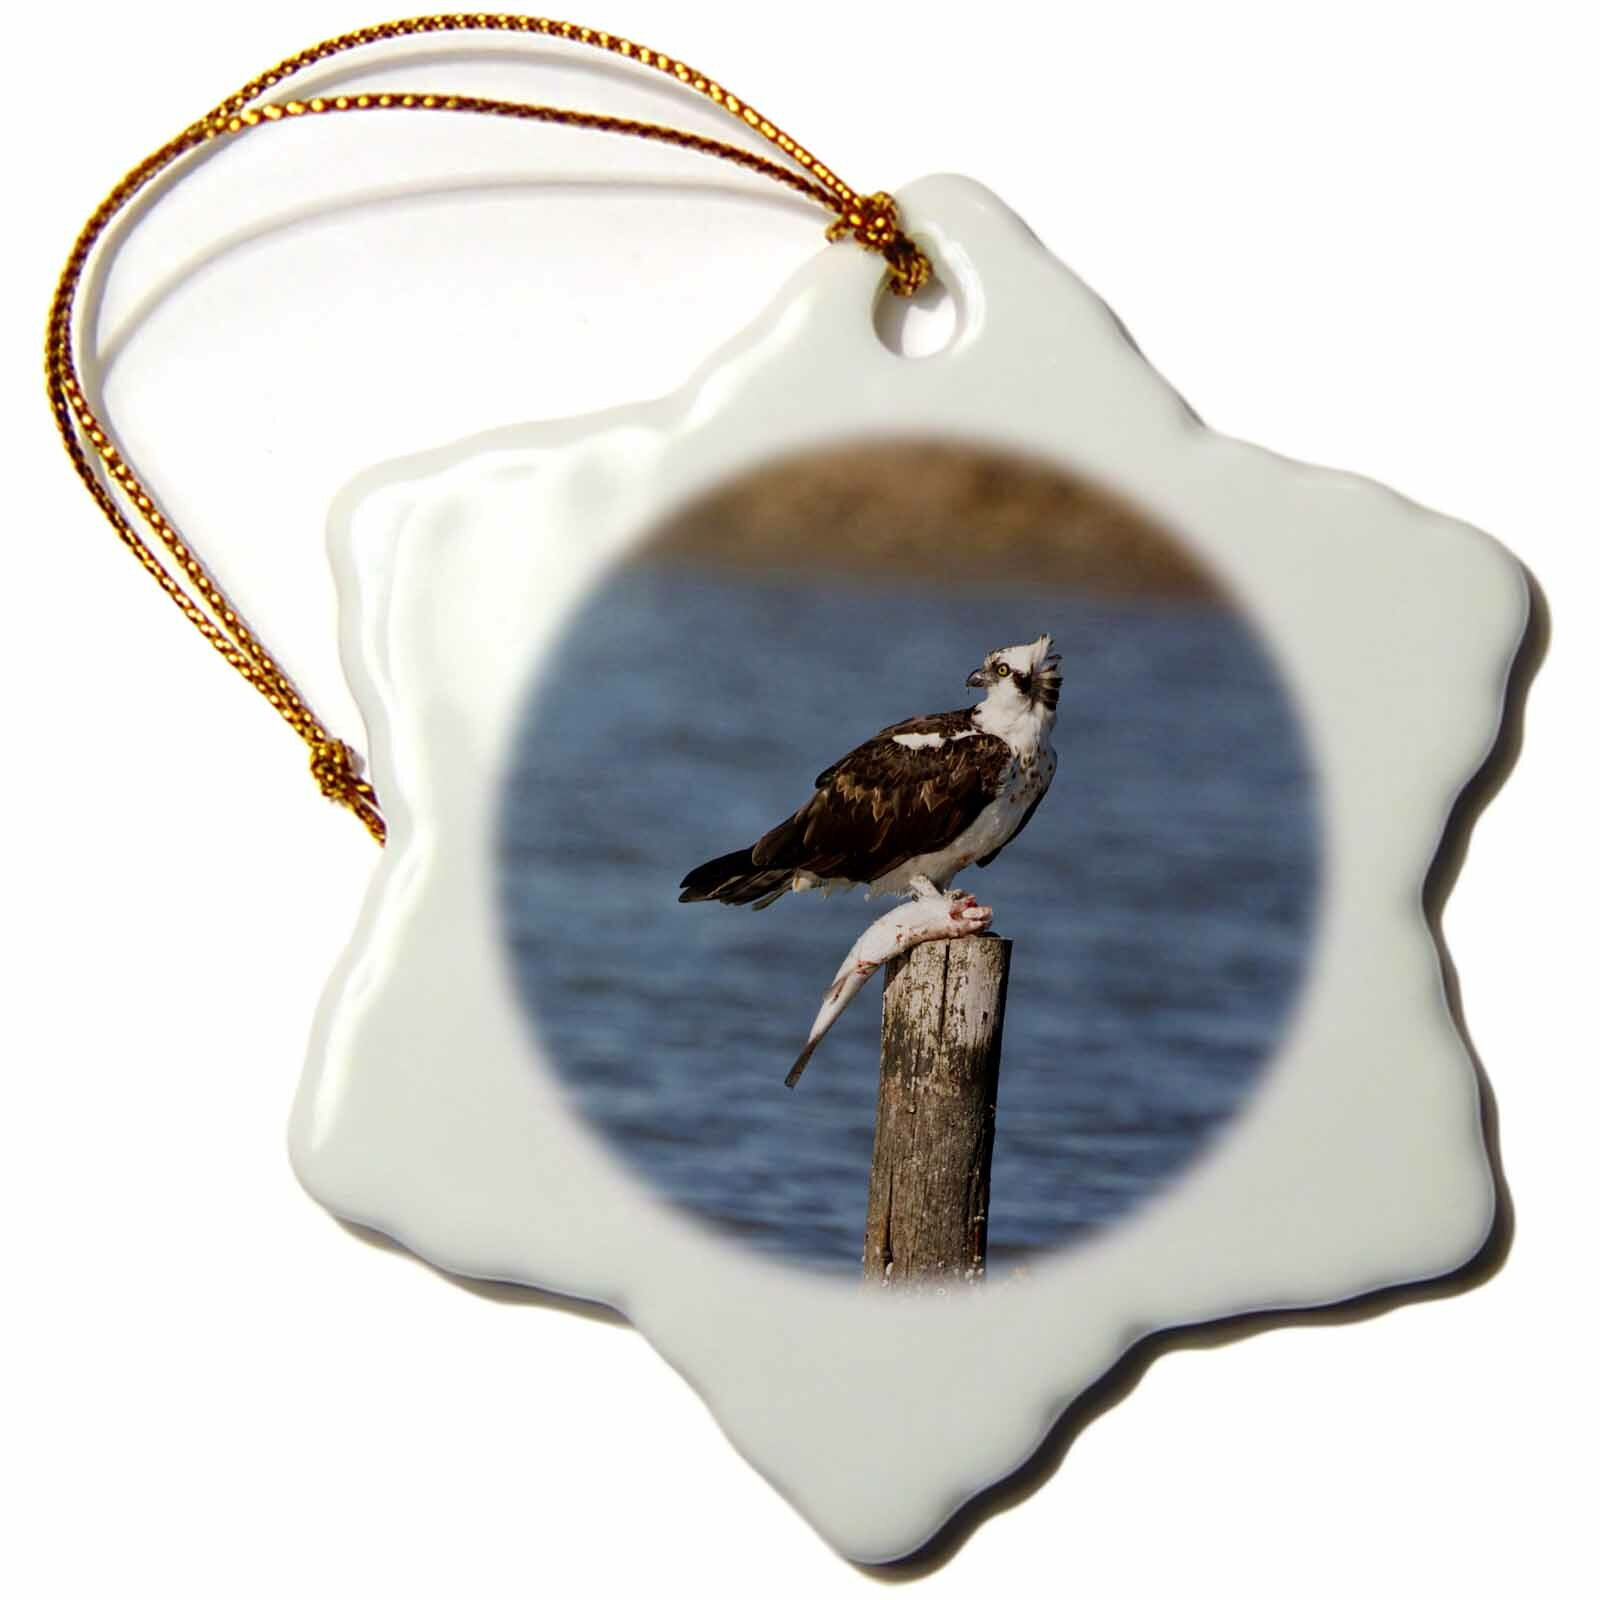 The Holiday Aisle Osprey Bird Pandion Haliaetus With Fish Texas Usa Snowflake Holiday Shaped Ornament Wayfair